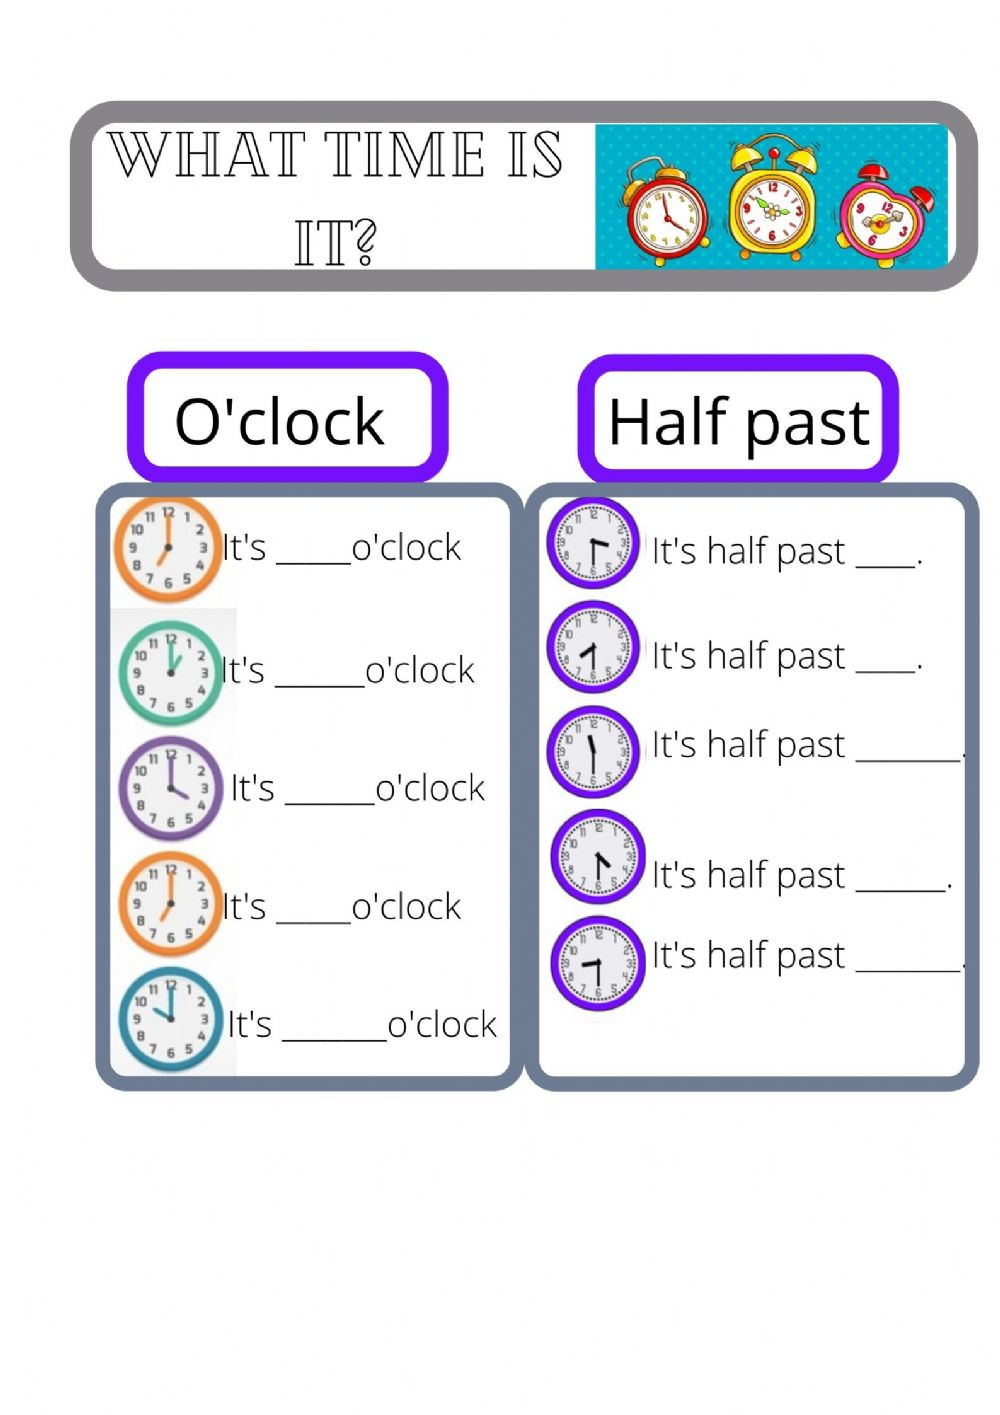 medium resolution of Time activity for year 3 / grade 3/ elementary level